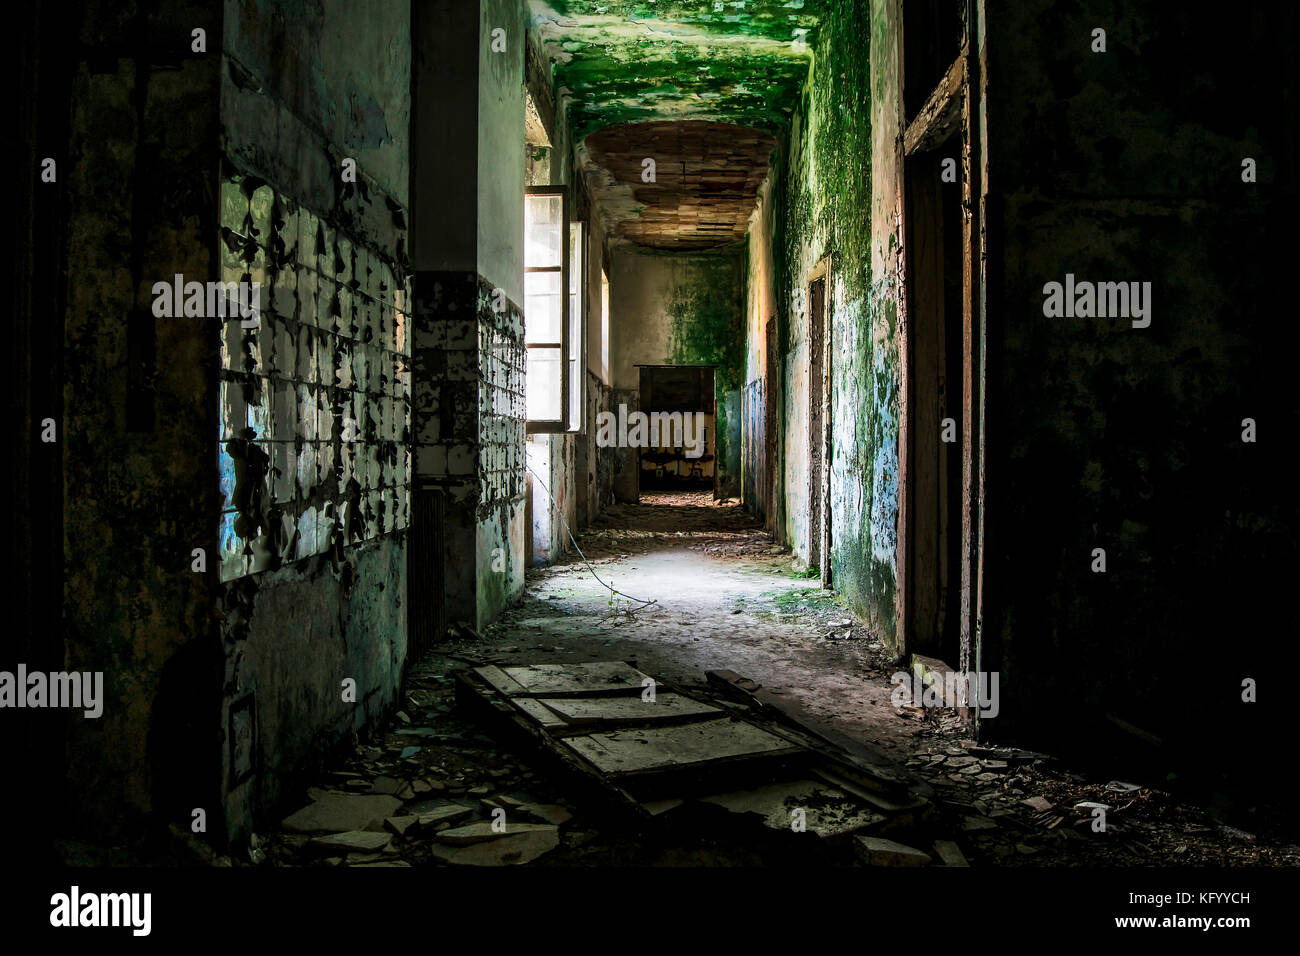 a view on a creepy corridon inside a psychiatric hospital abandoned some years ago - Stock Image